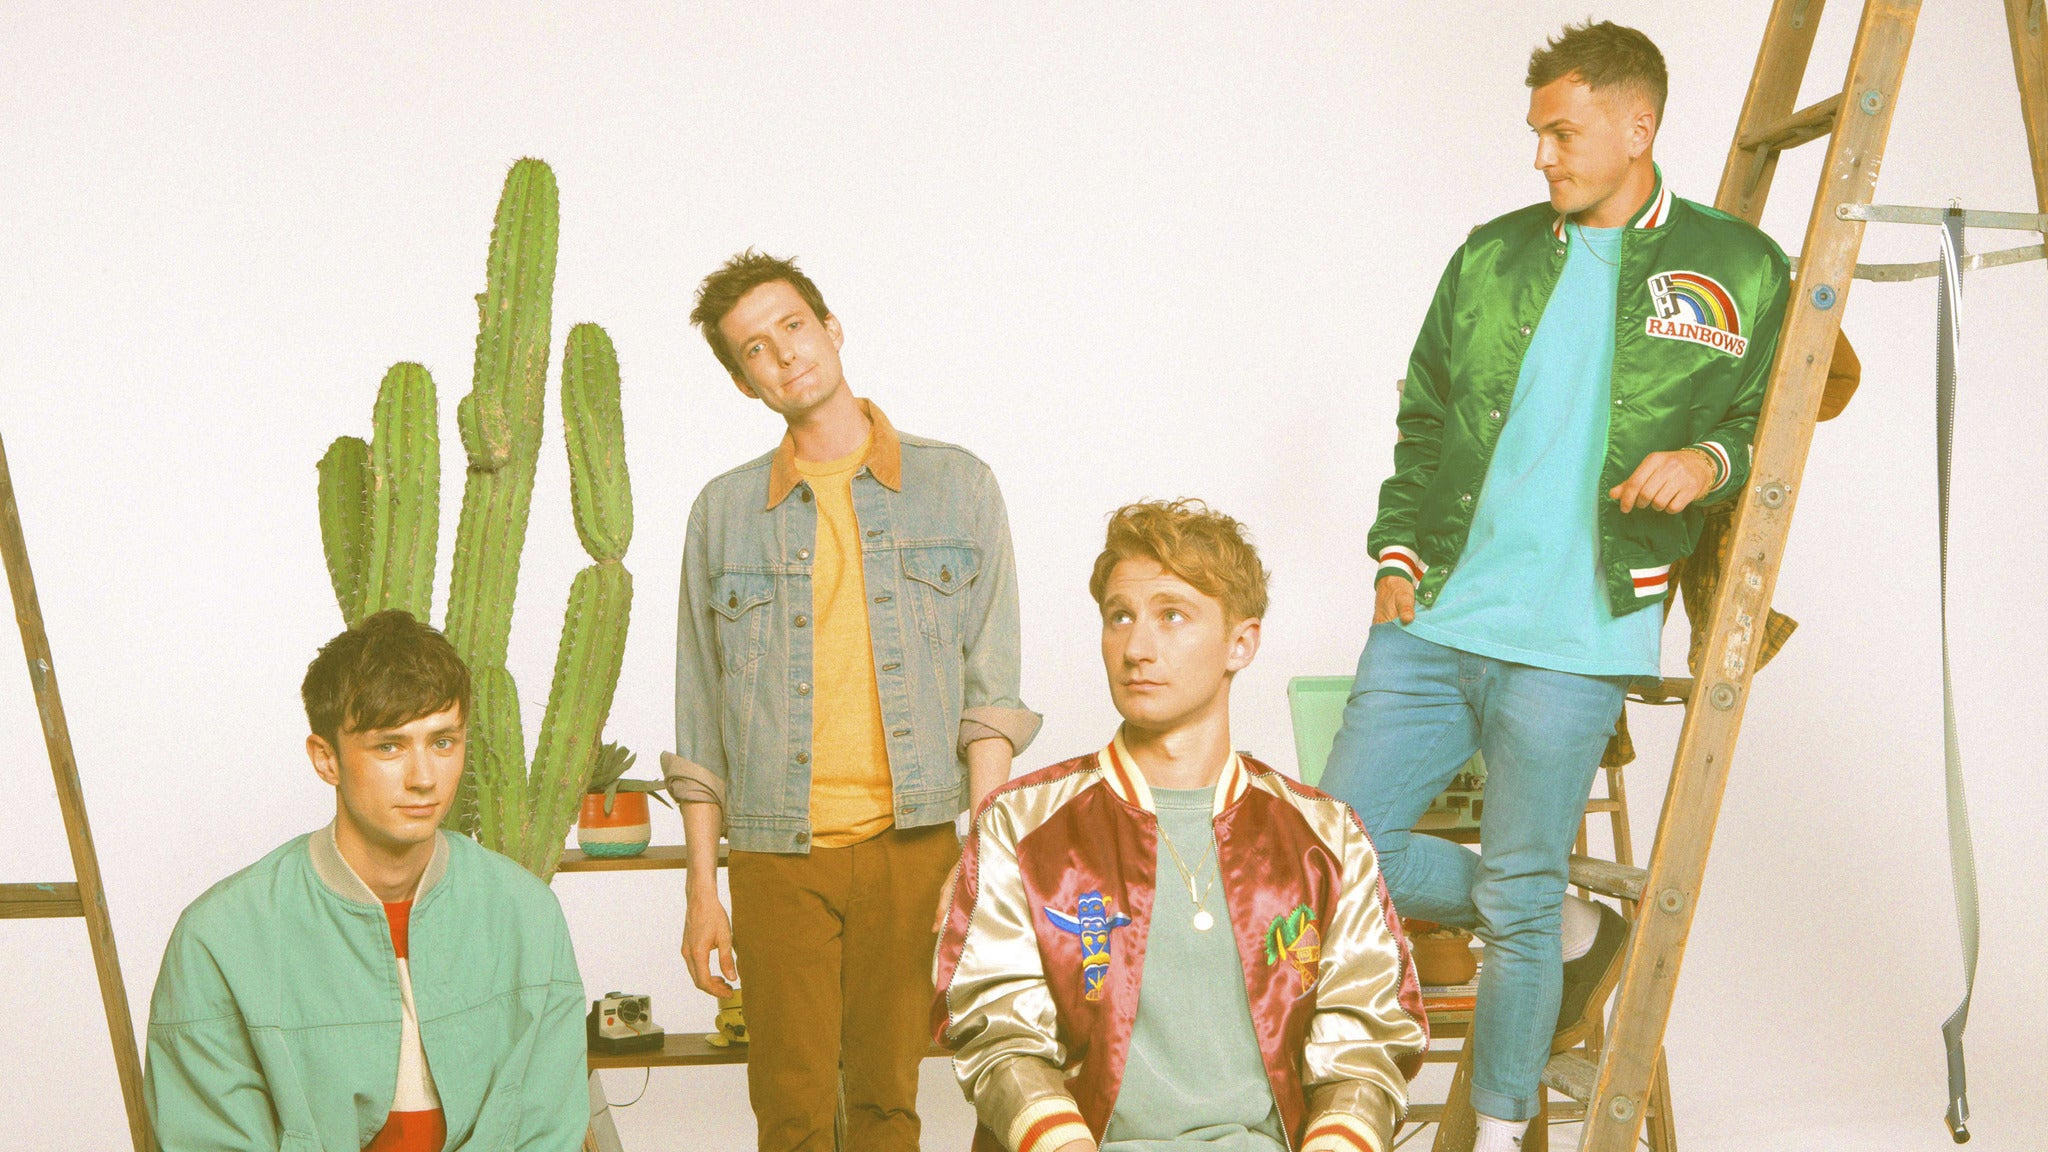 Radio 104.5 Presents Glass Animals at The Vogue